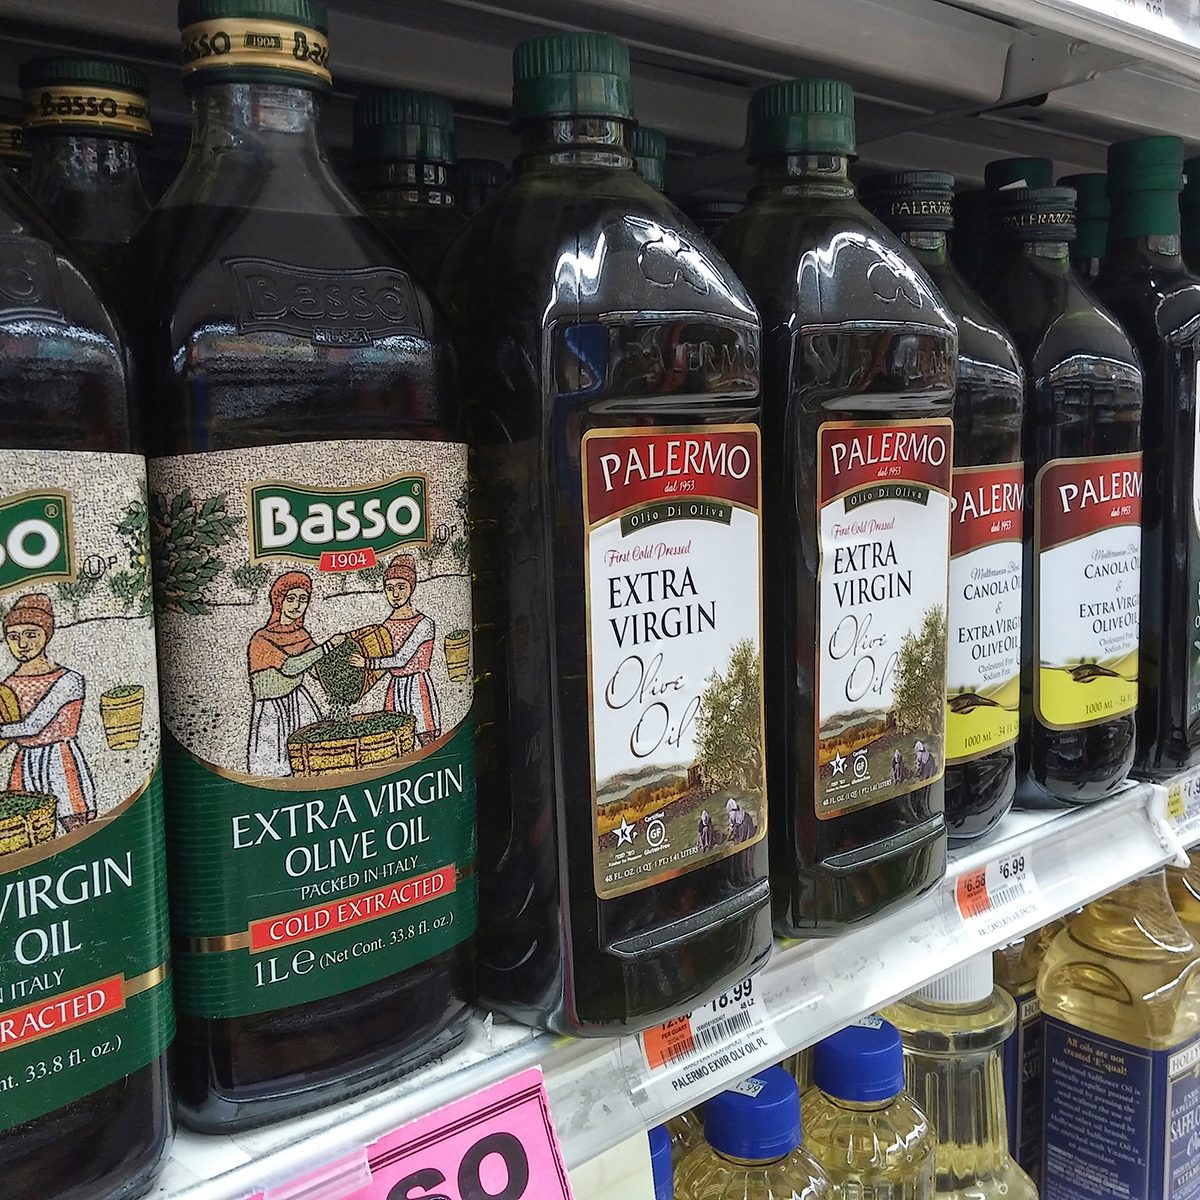 healthy oils Bottles of imported olive oil and olive oil blends are seen on a supermarket shelf in New York on Monday, March 21, 2016. (© Richard B. Levine) (Photo by Richard Levine/Corbis via Getty Images)